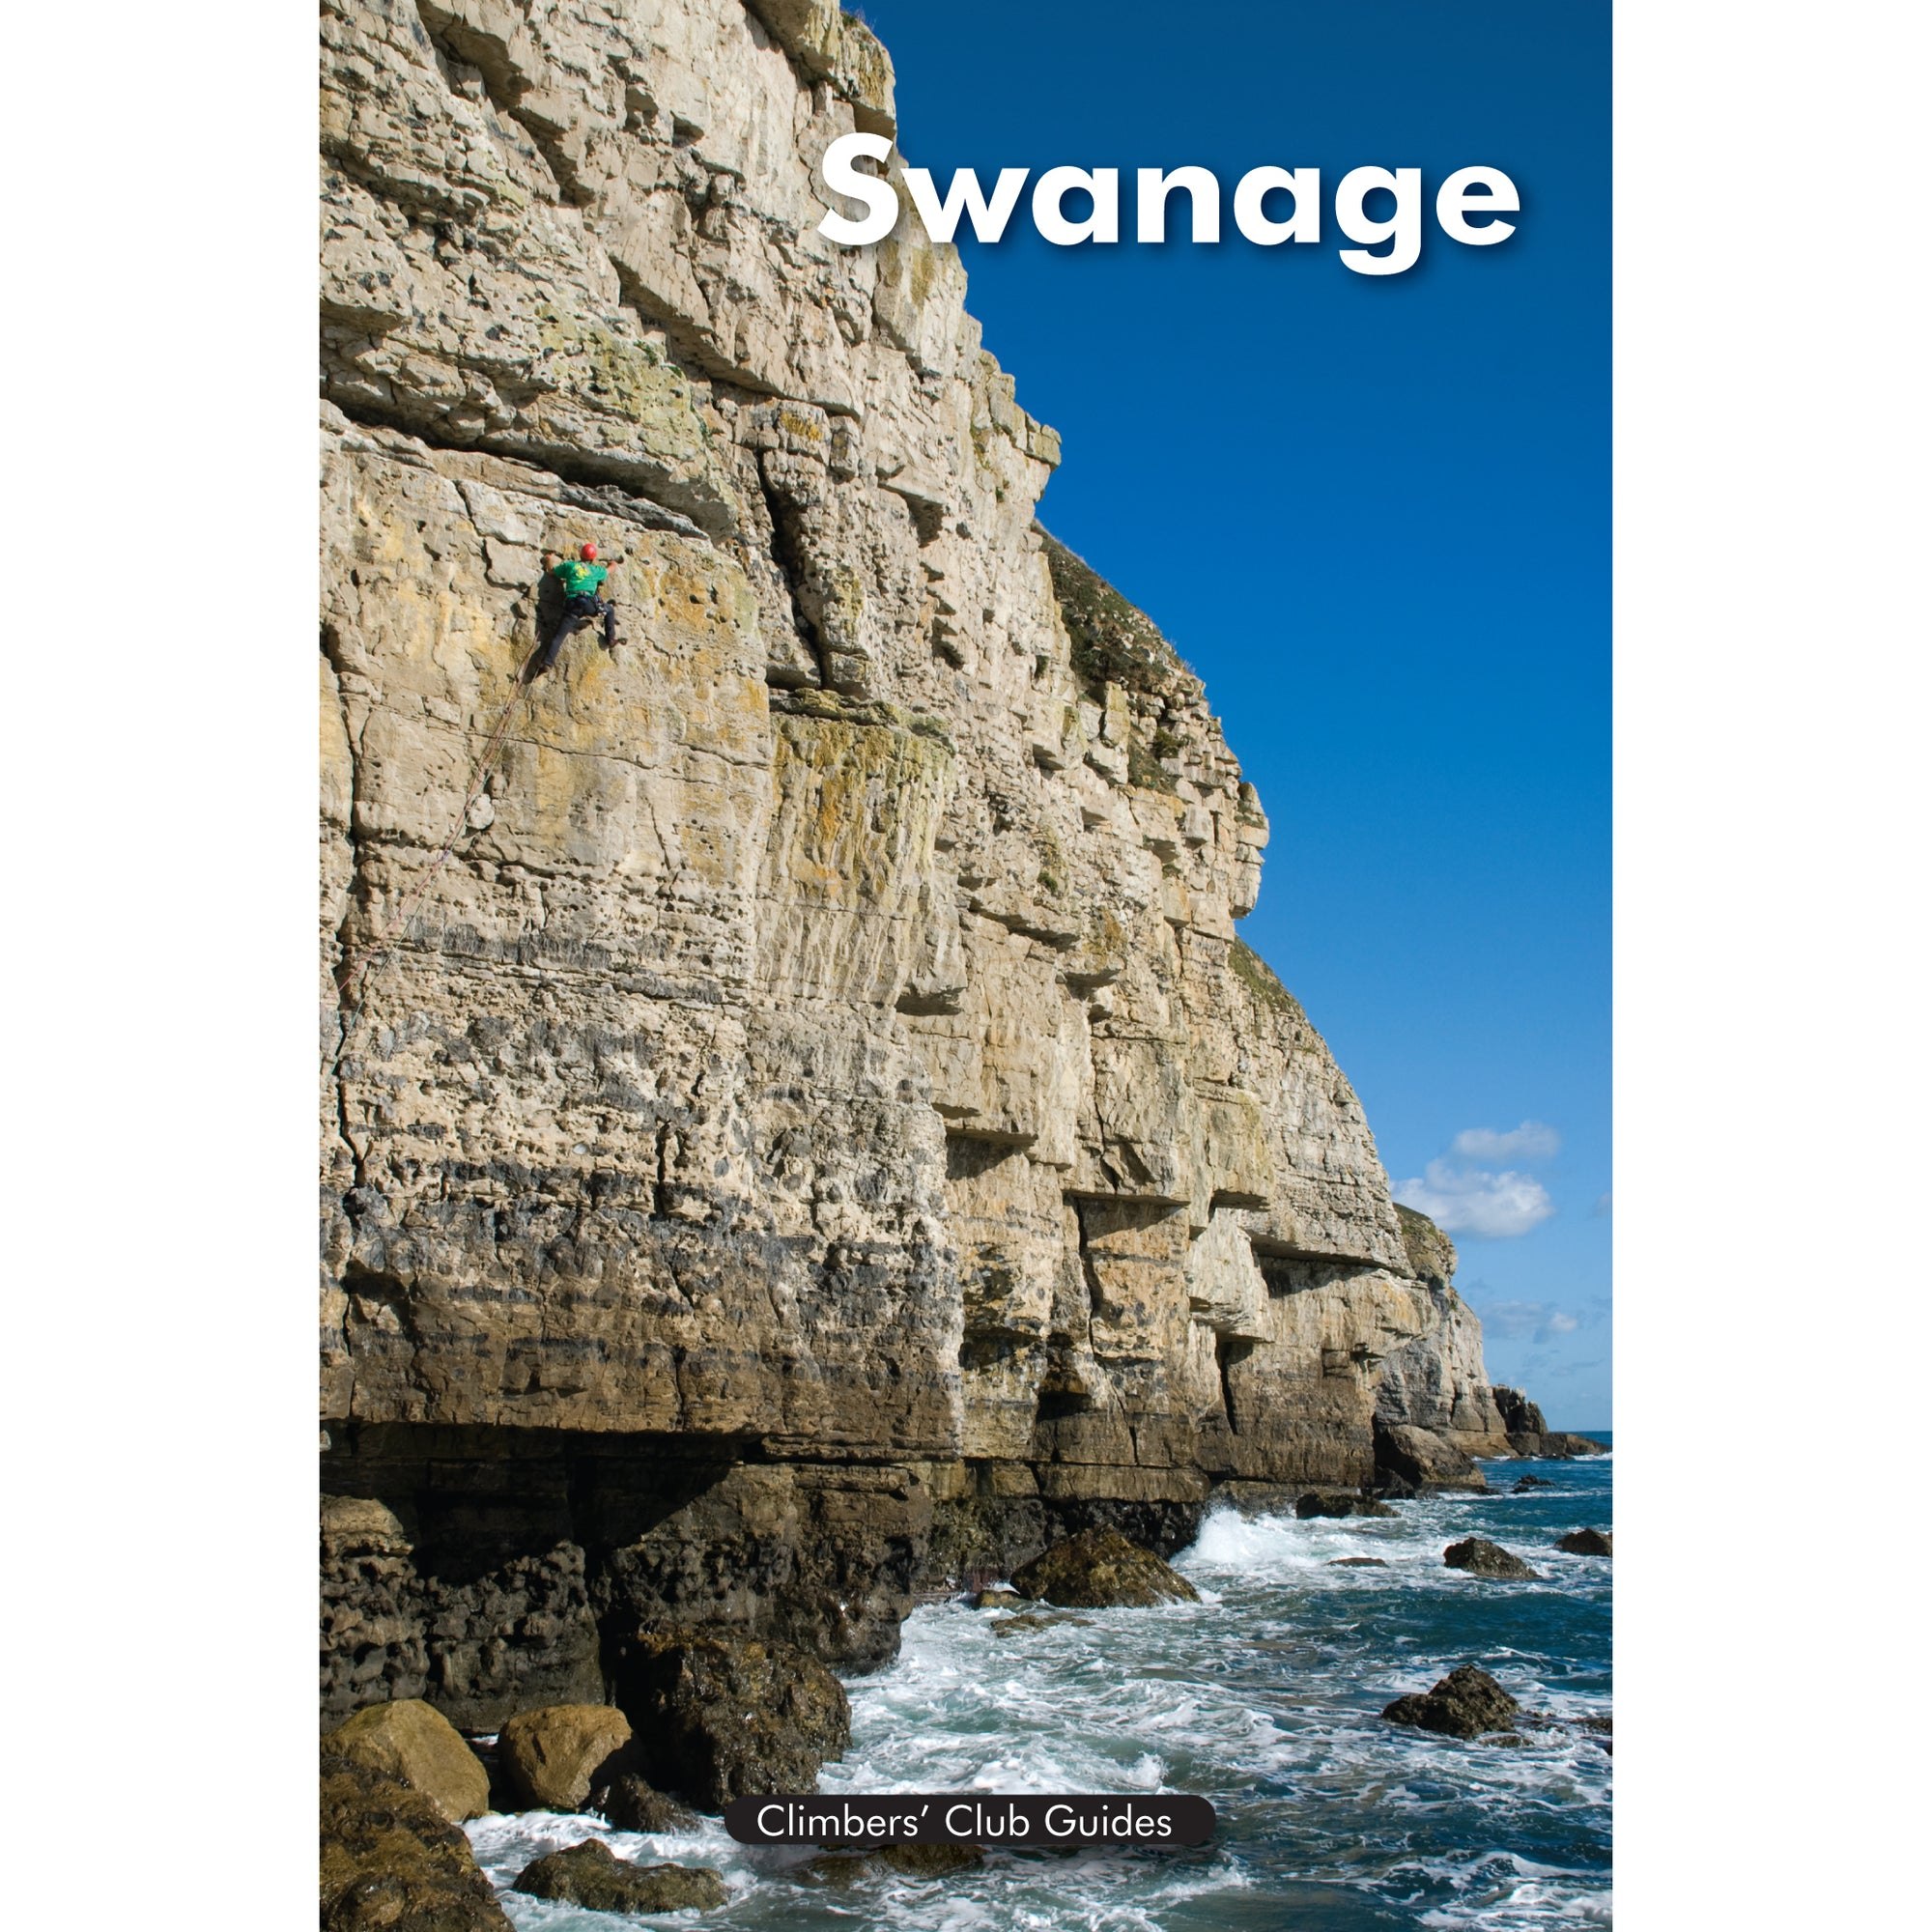 Swanage climbing guidebook, showing front cover